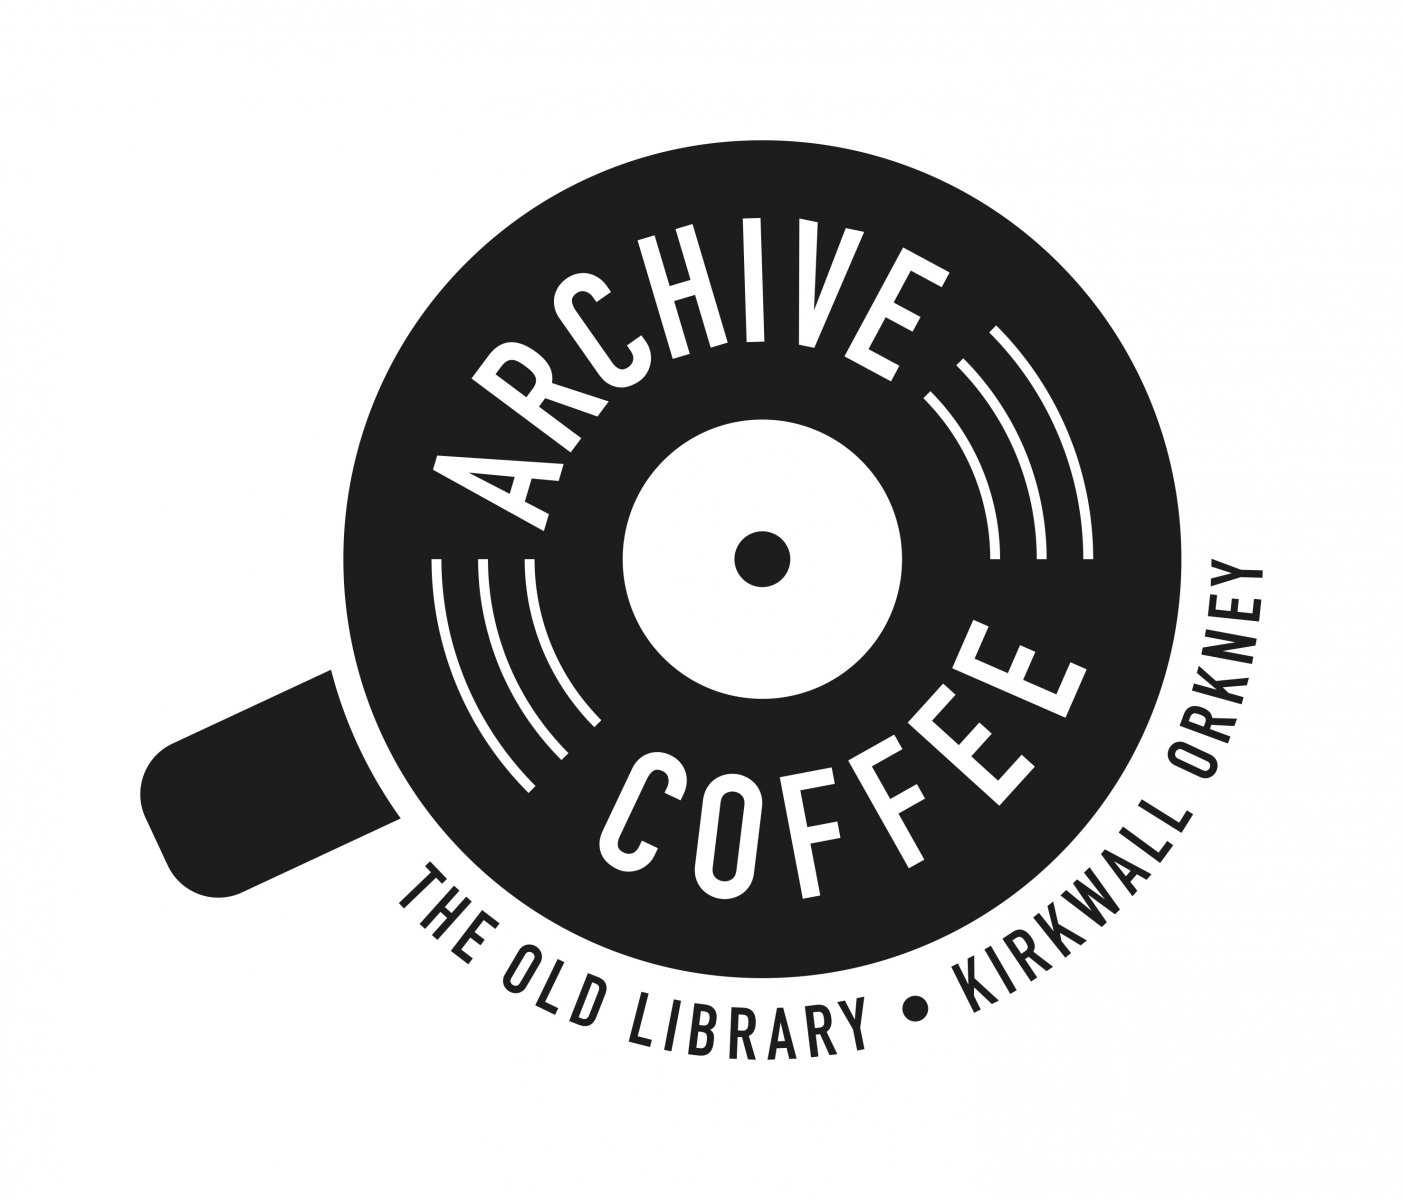 Archive Coffee Logo